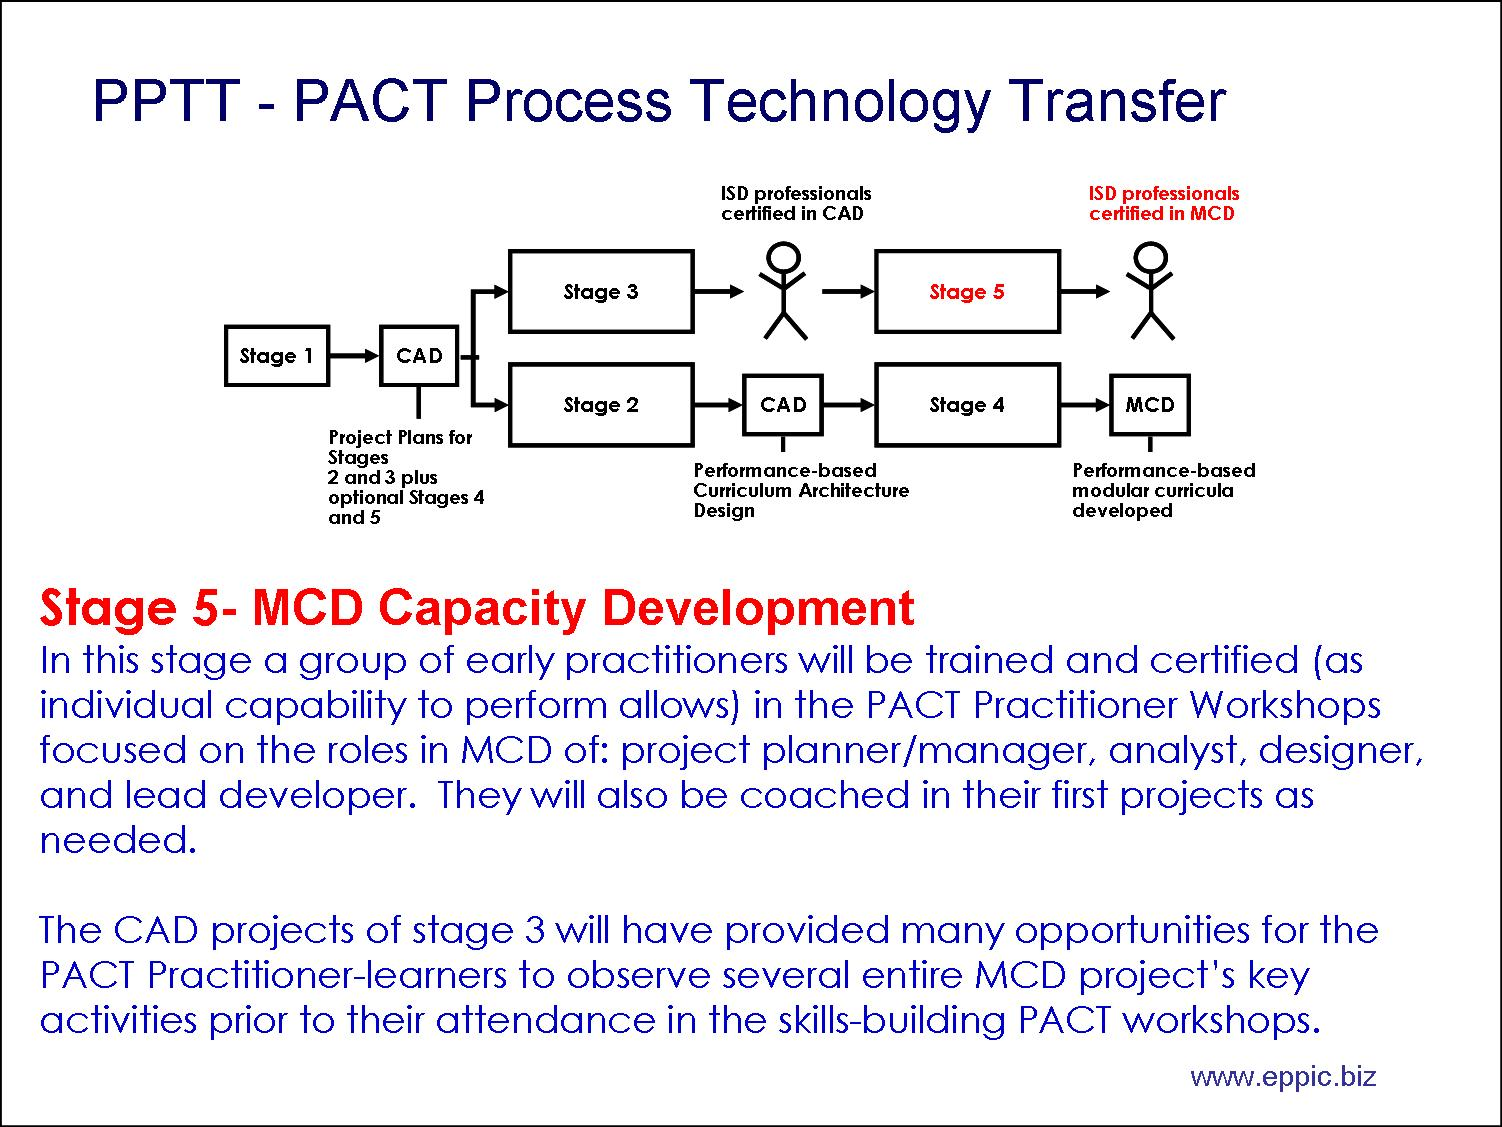 implementing pact via a pptt  u2013 pact process technology